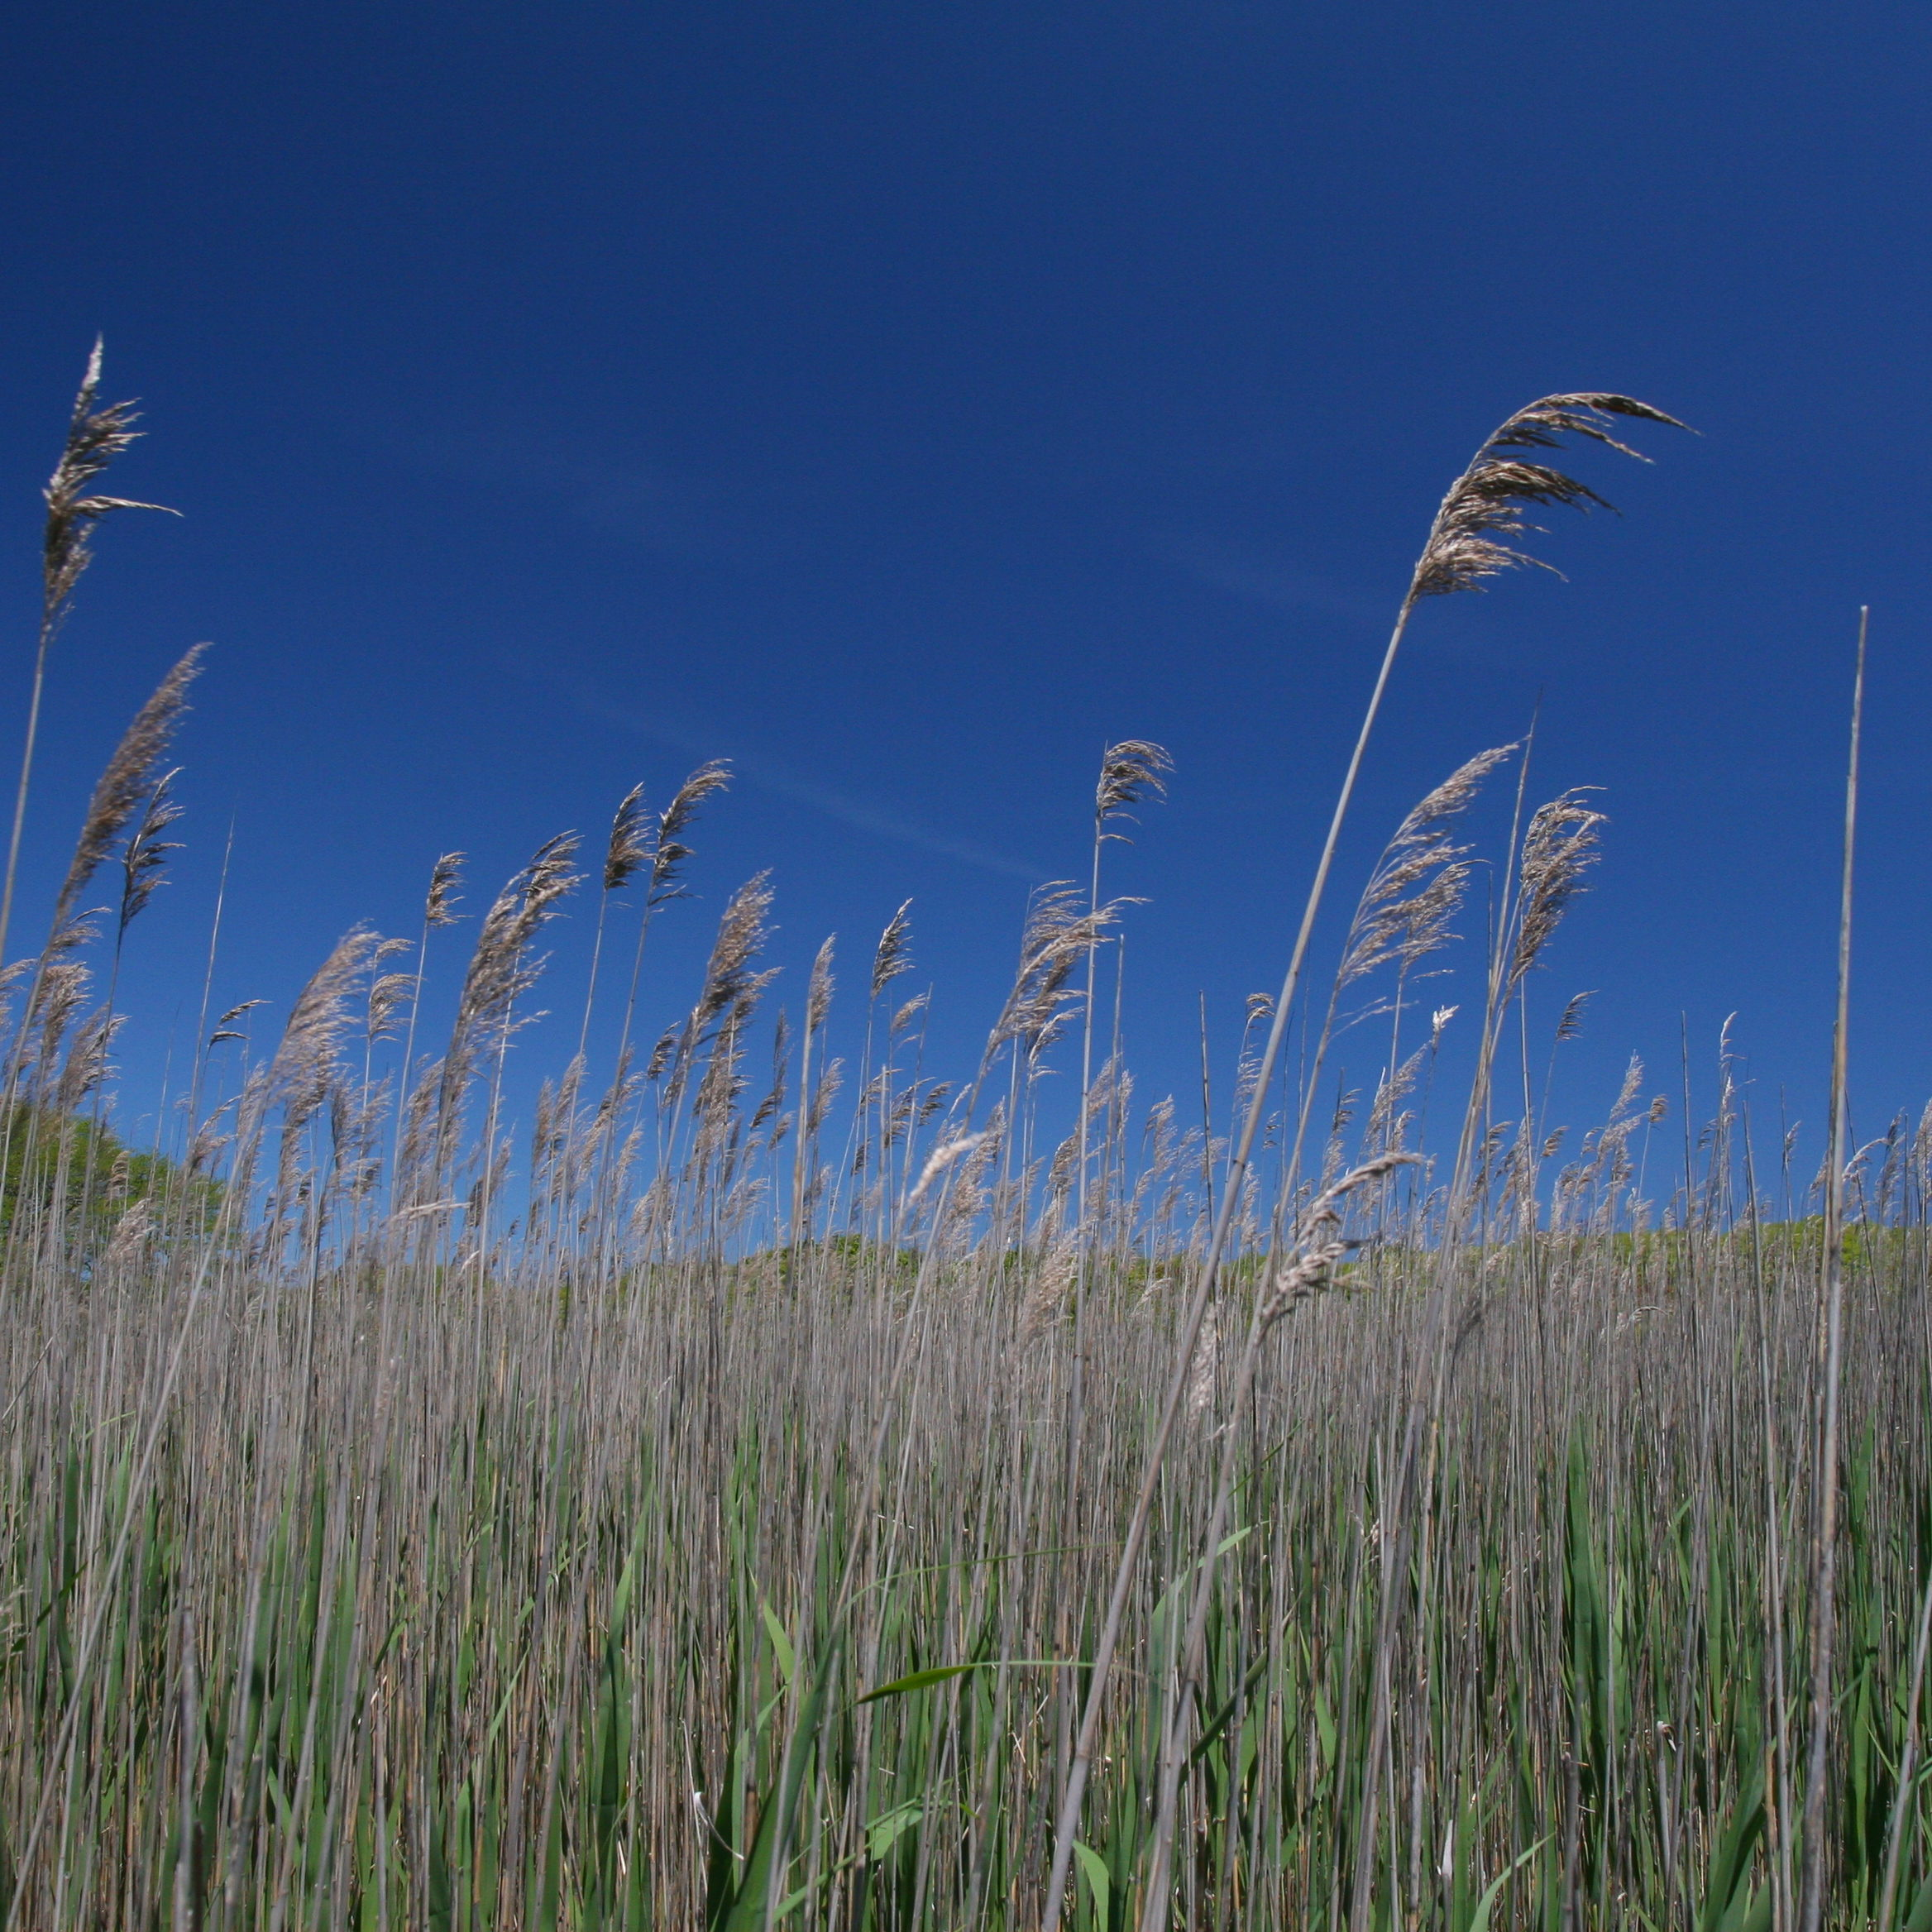 Common reed <em>(Phragmites australis)</em>